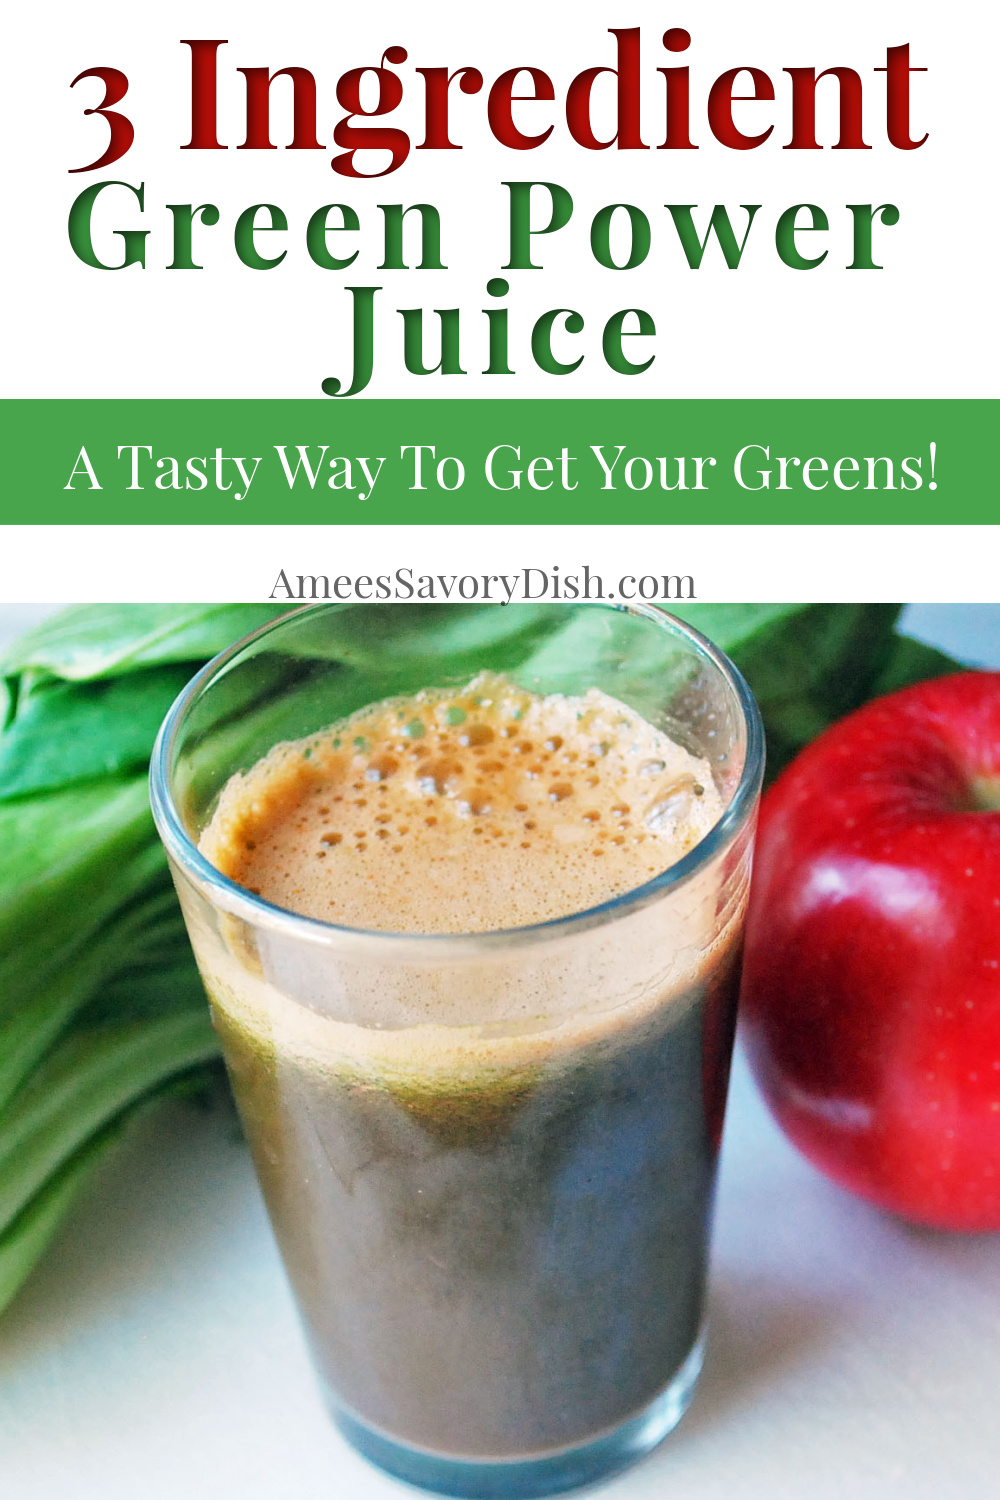 Green power juice is a healthy real-food green juice recipe with just 3 wholesome ingredients, packed with nutrients, and tastes great, too! #juicing #greenjuice #juicingrecipe via @Ameessavorydish